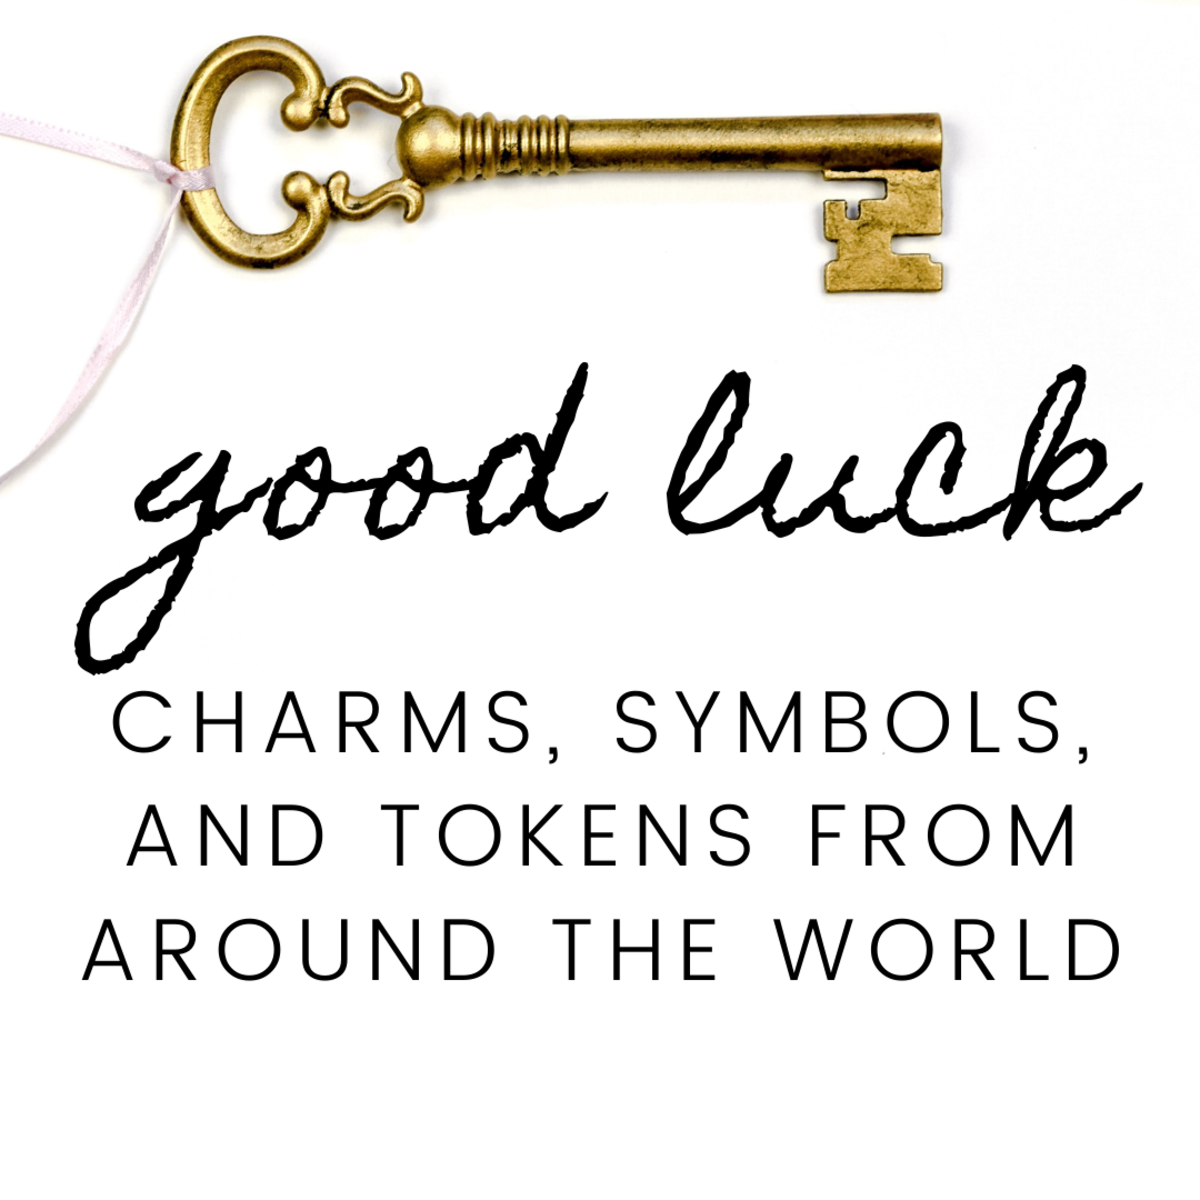 50 Good Luck Symbols and Signs From Around the World